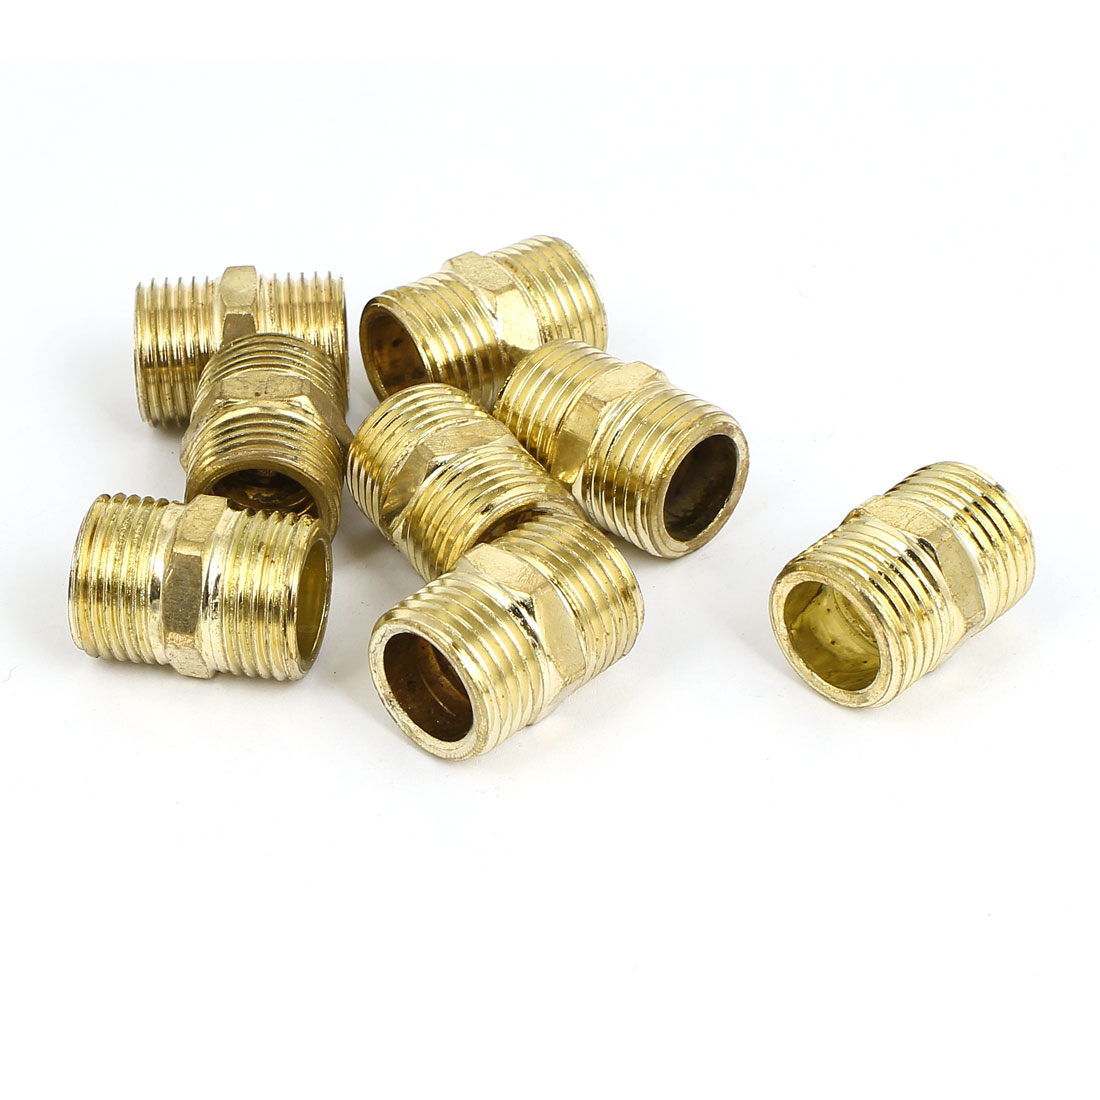 1/2BSP to 1/2BSP Male Thread Air Water Pipe Fitting Hex Nipple Gold Tone 8Pcs